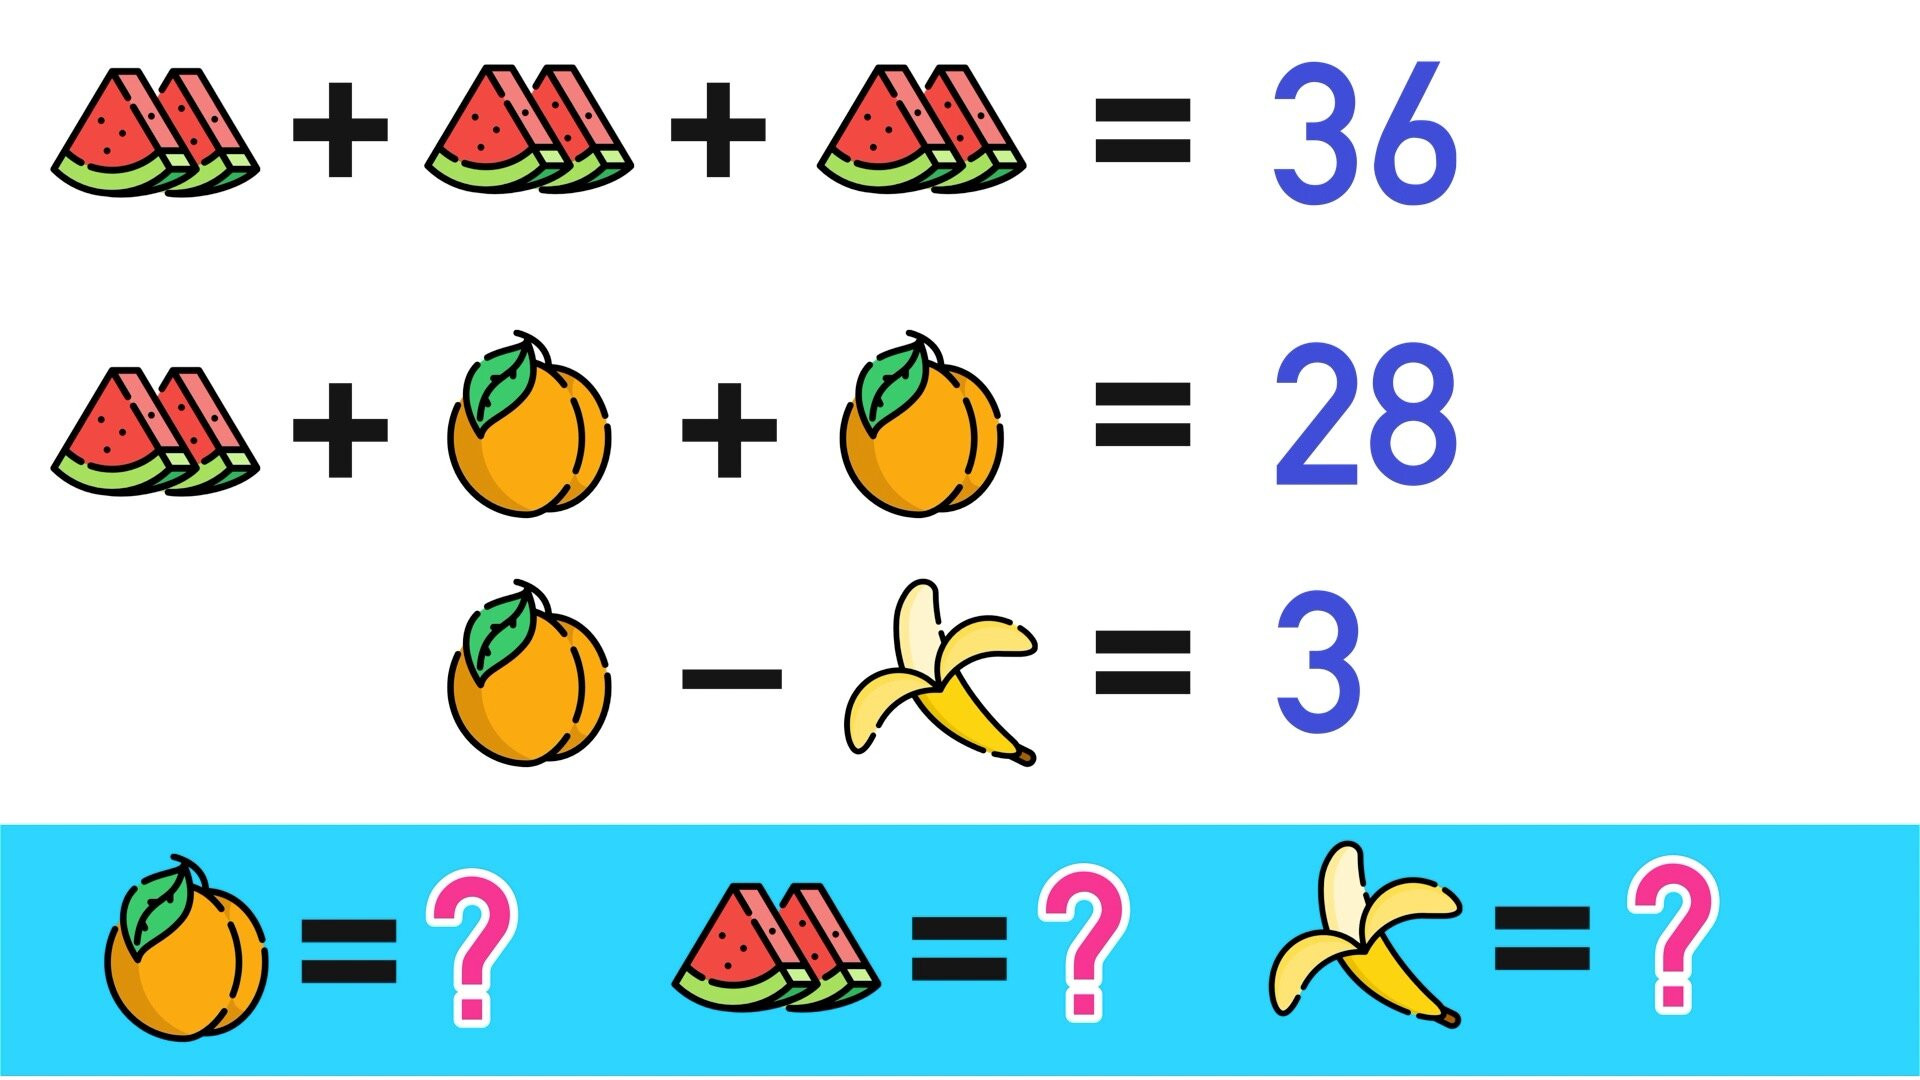 6th Grade Math Puzzles Printable 7 Super Fun Math Logic Puzzles for Kids — Mashup Math